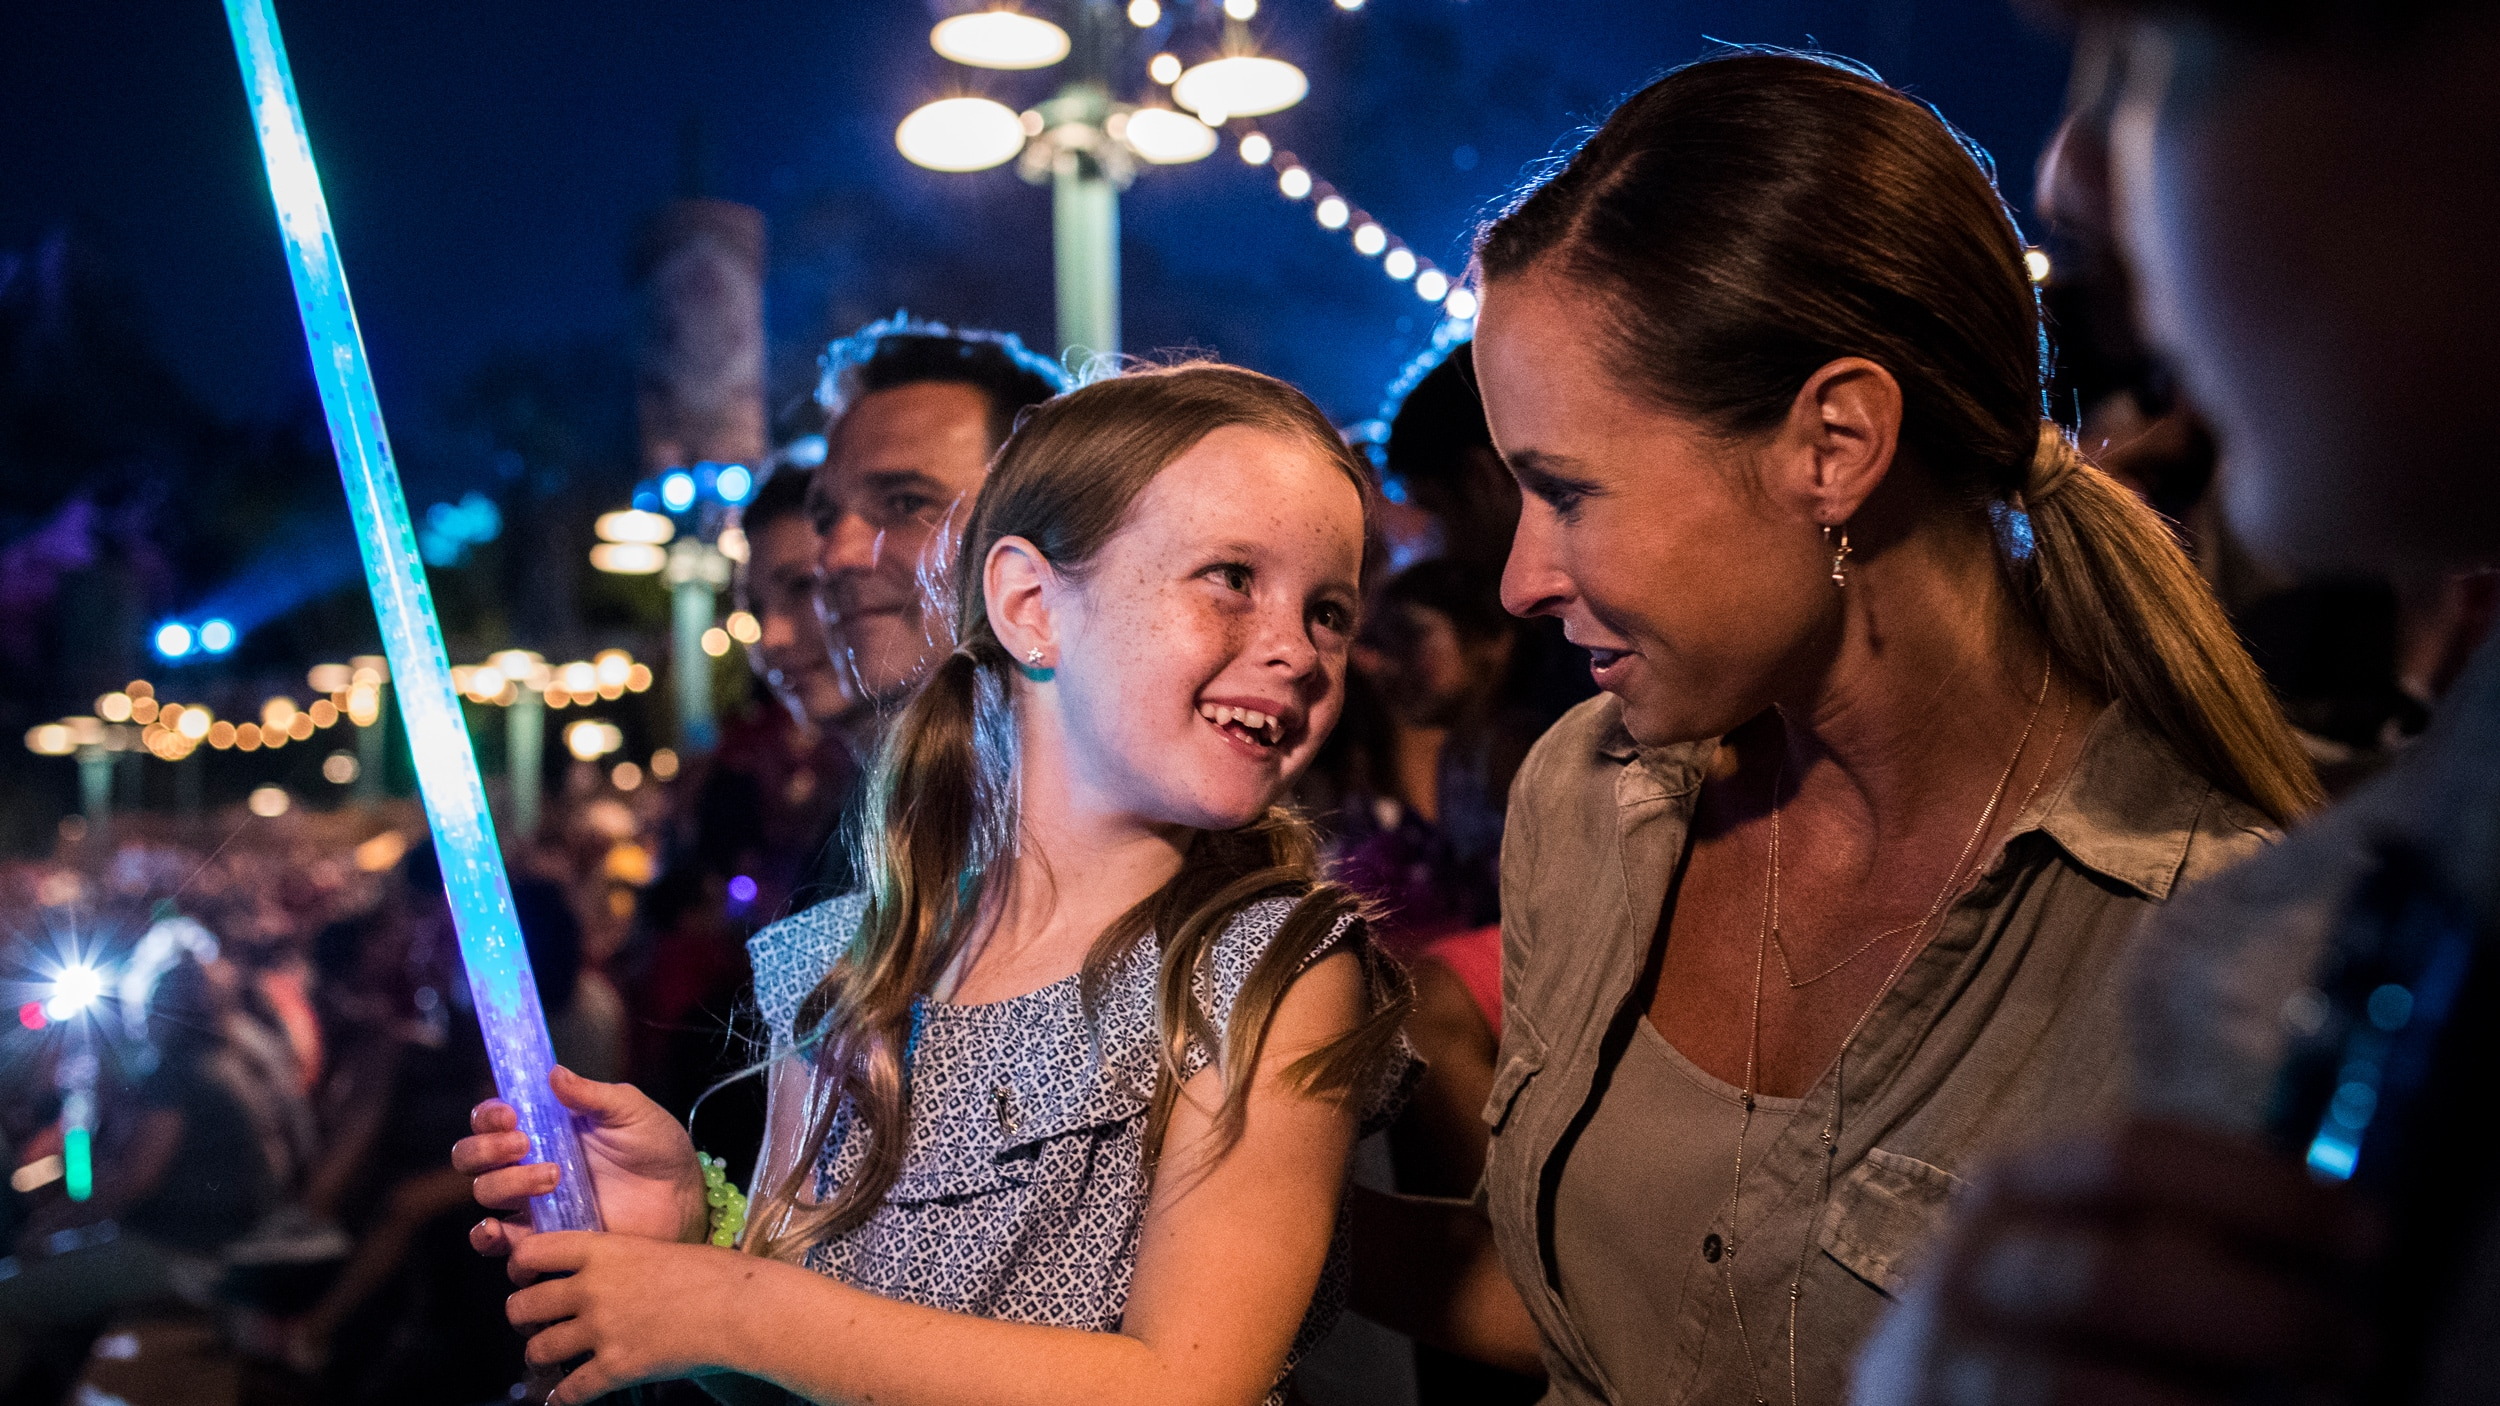 A young girl holding a lightsaber while smiling at her mother